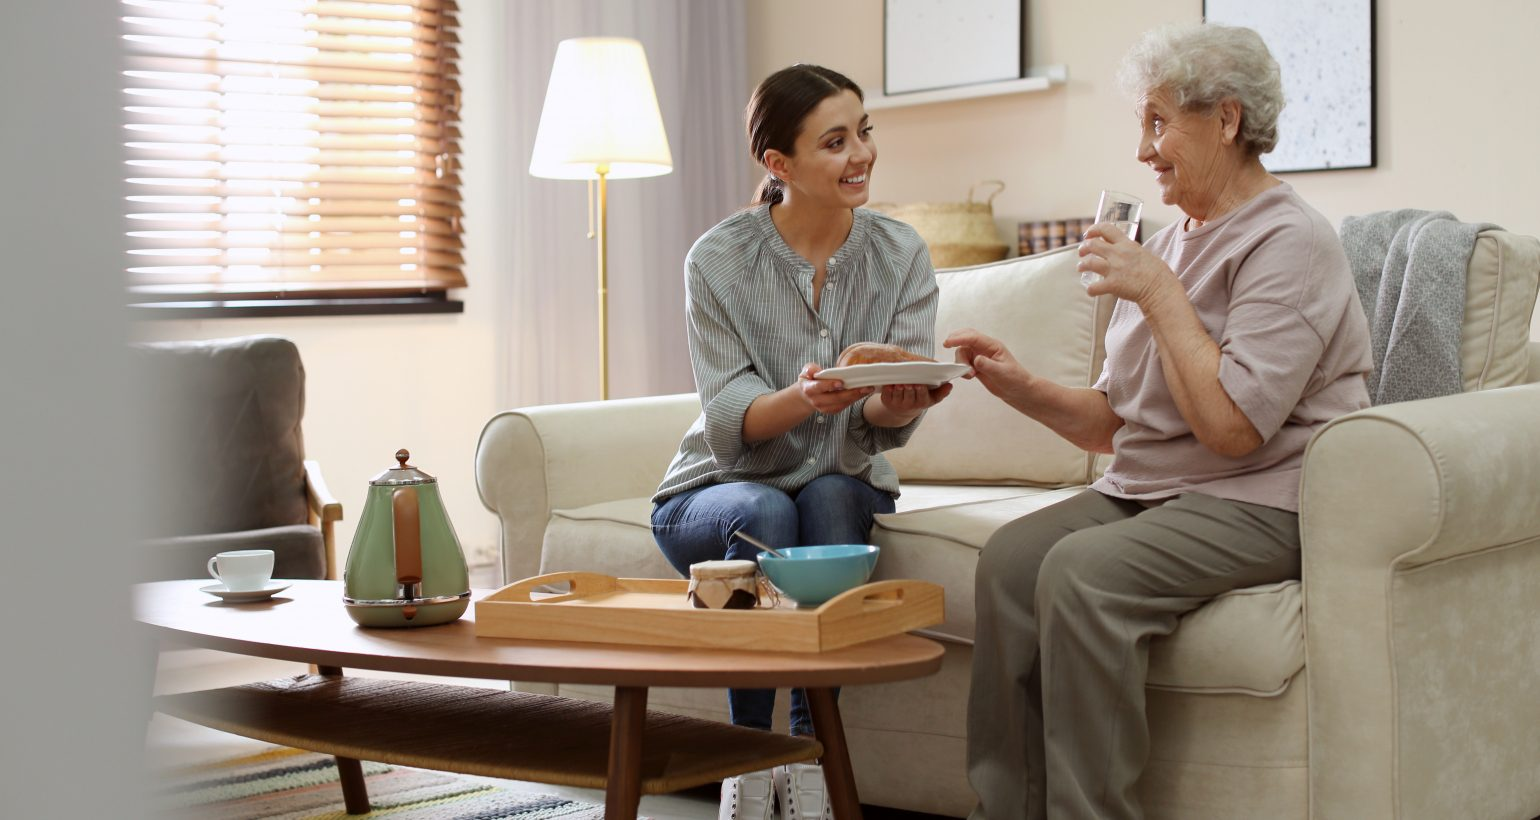 Young woman serving dinner for elderly woman in living room